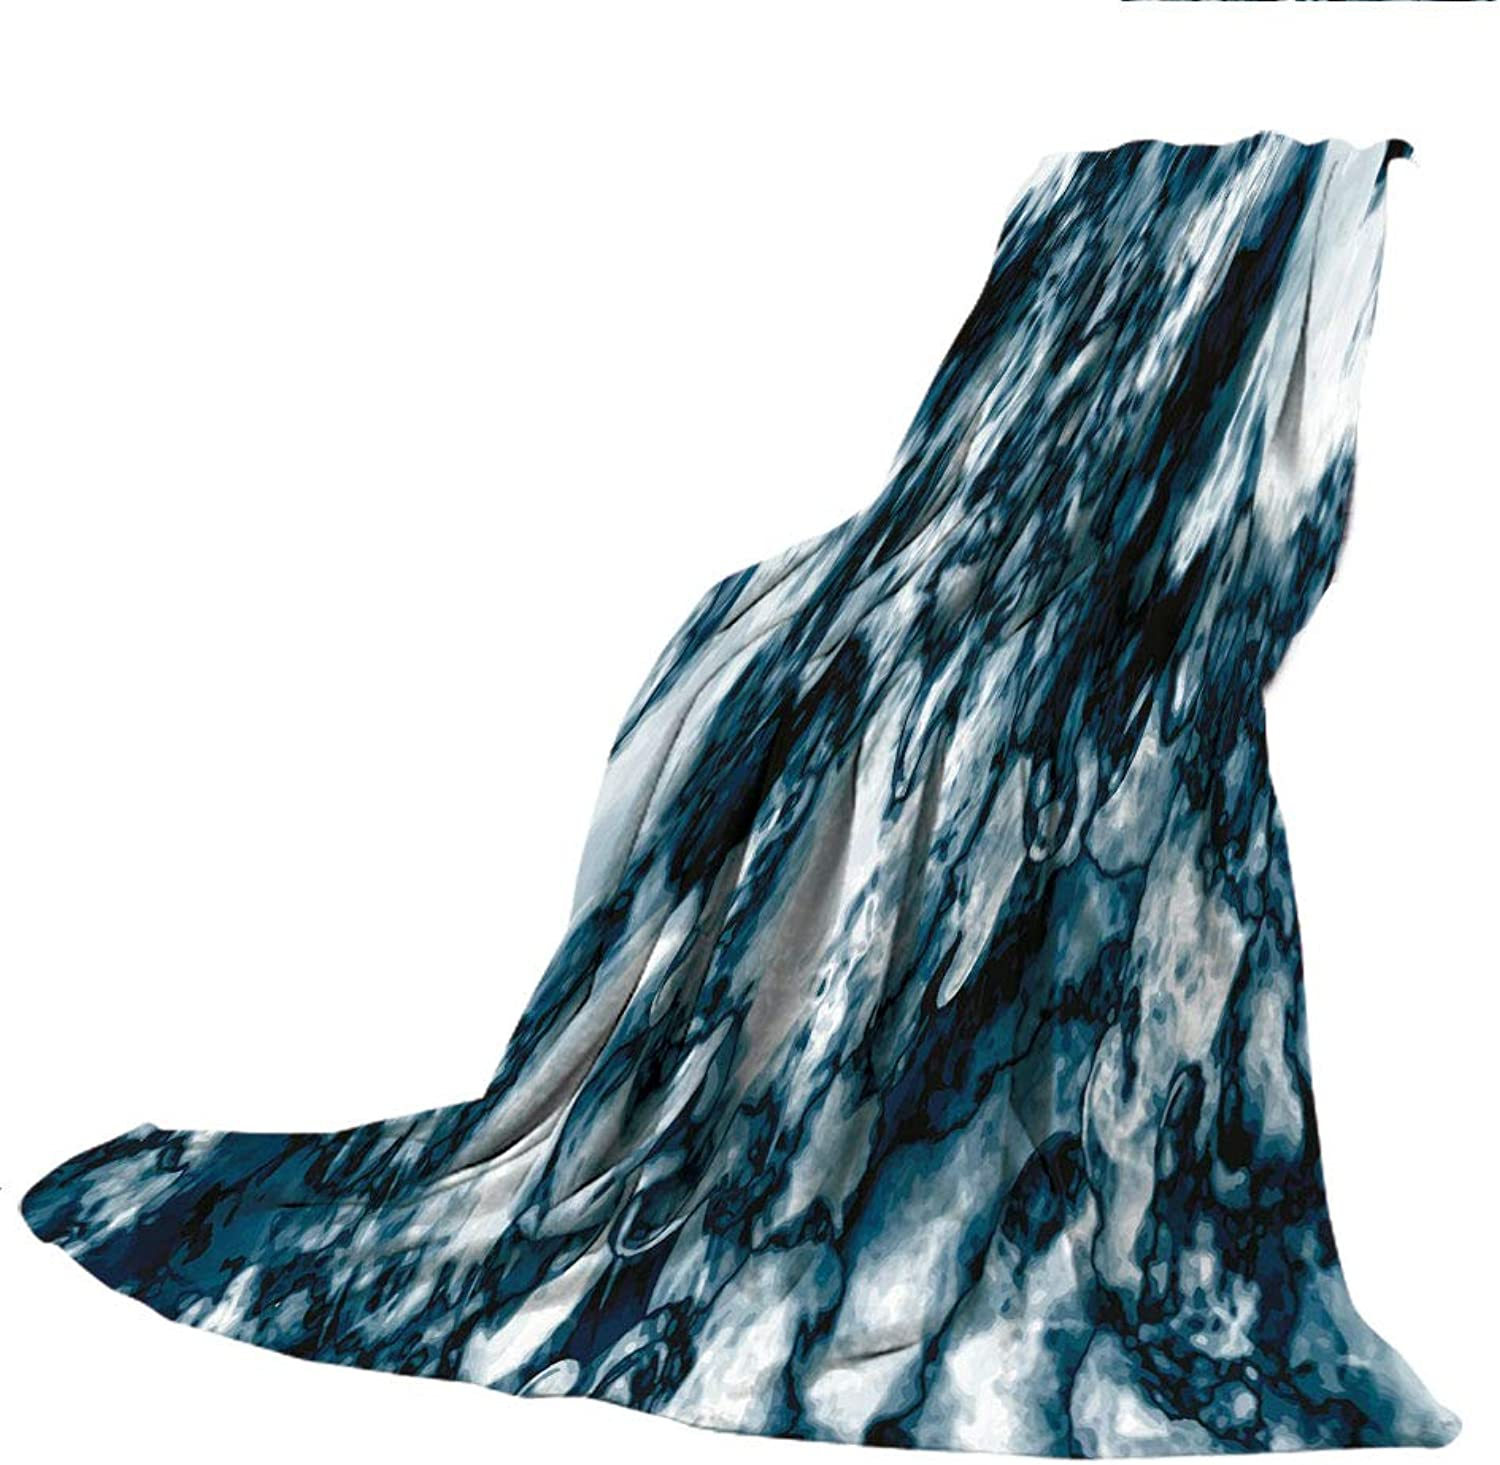 SCOCICI Blanket for Bed Couch Chair Fall Winter Spring Living Room,Marble,Unusual Gemstone Onyx Rock Nature Pattern with Vintage Paintbrush Effects Decorative,Slate bluee Pearl,59.06  W x 86.62  H